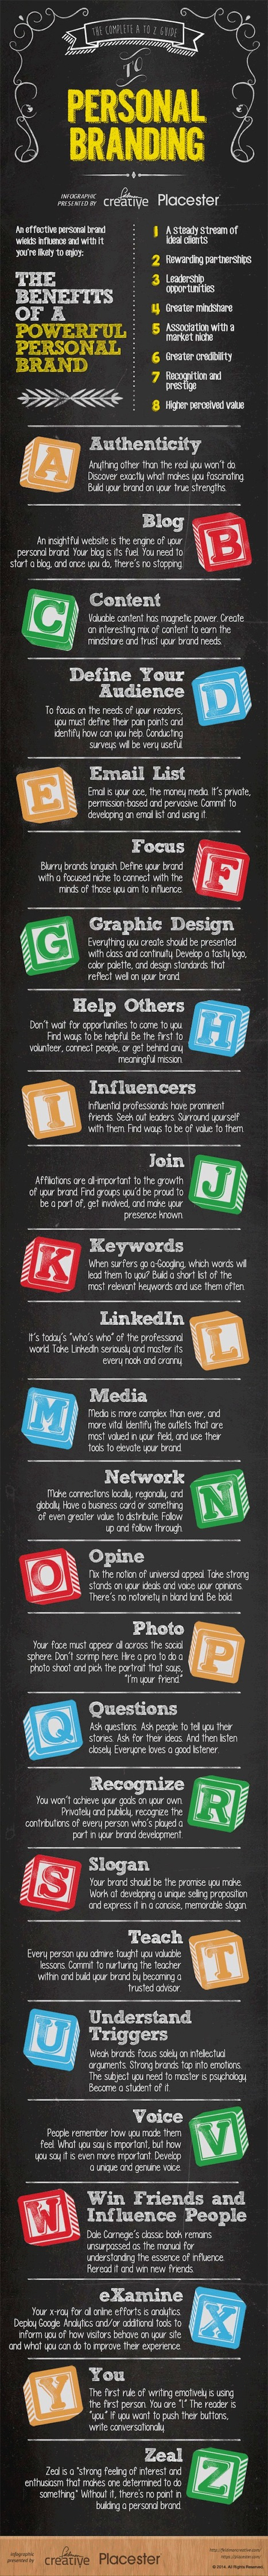 The ABCs of Personal Branding [Infographic] - HubSpot | #TheMarketingTechAlert | Social Medial Marketing | Scoop.it